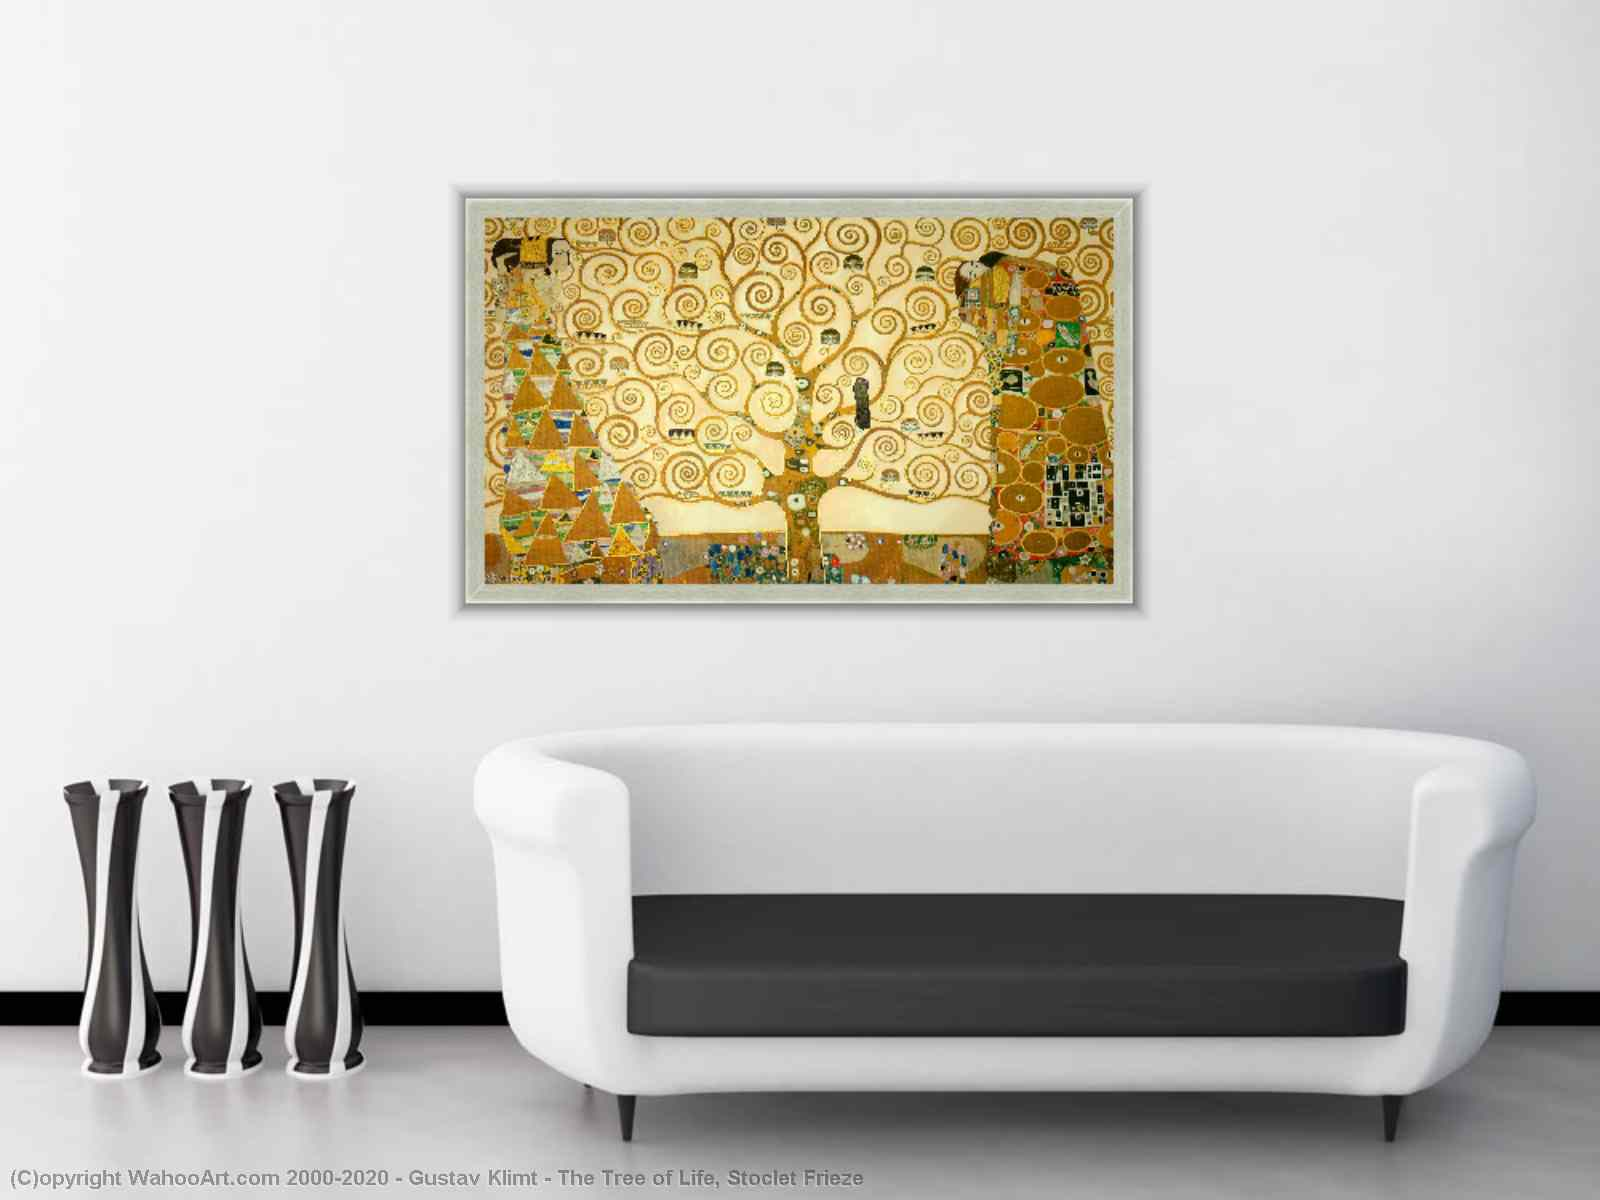 The Tree of Life, Stoclet Frieze by Gustav Klimt